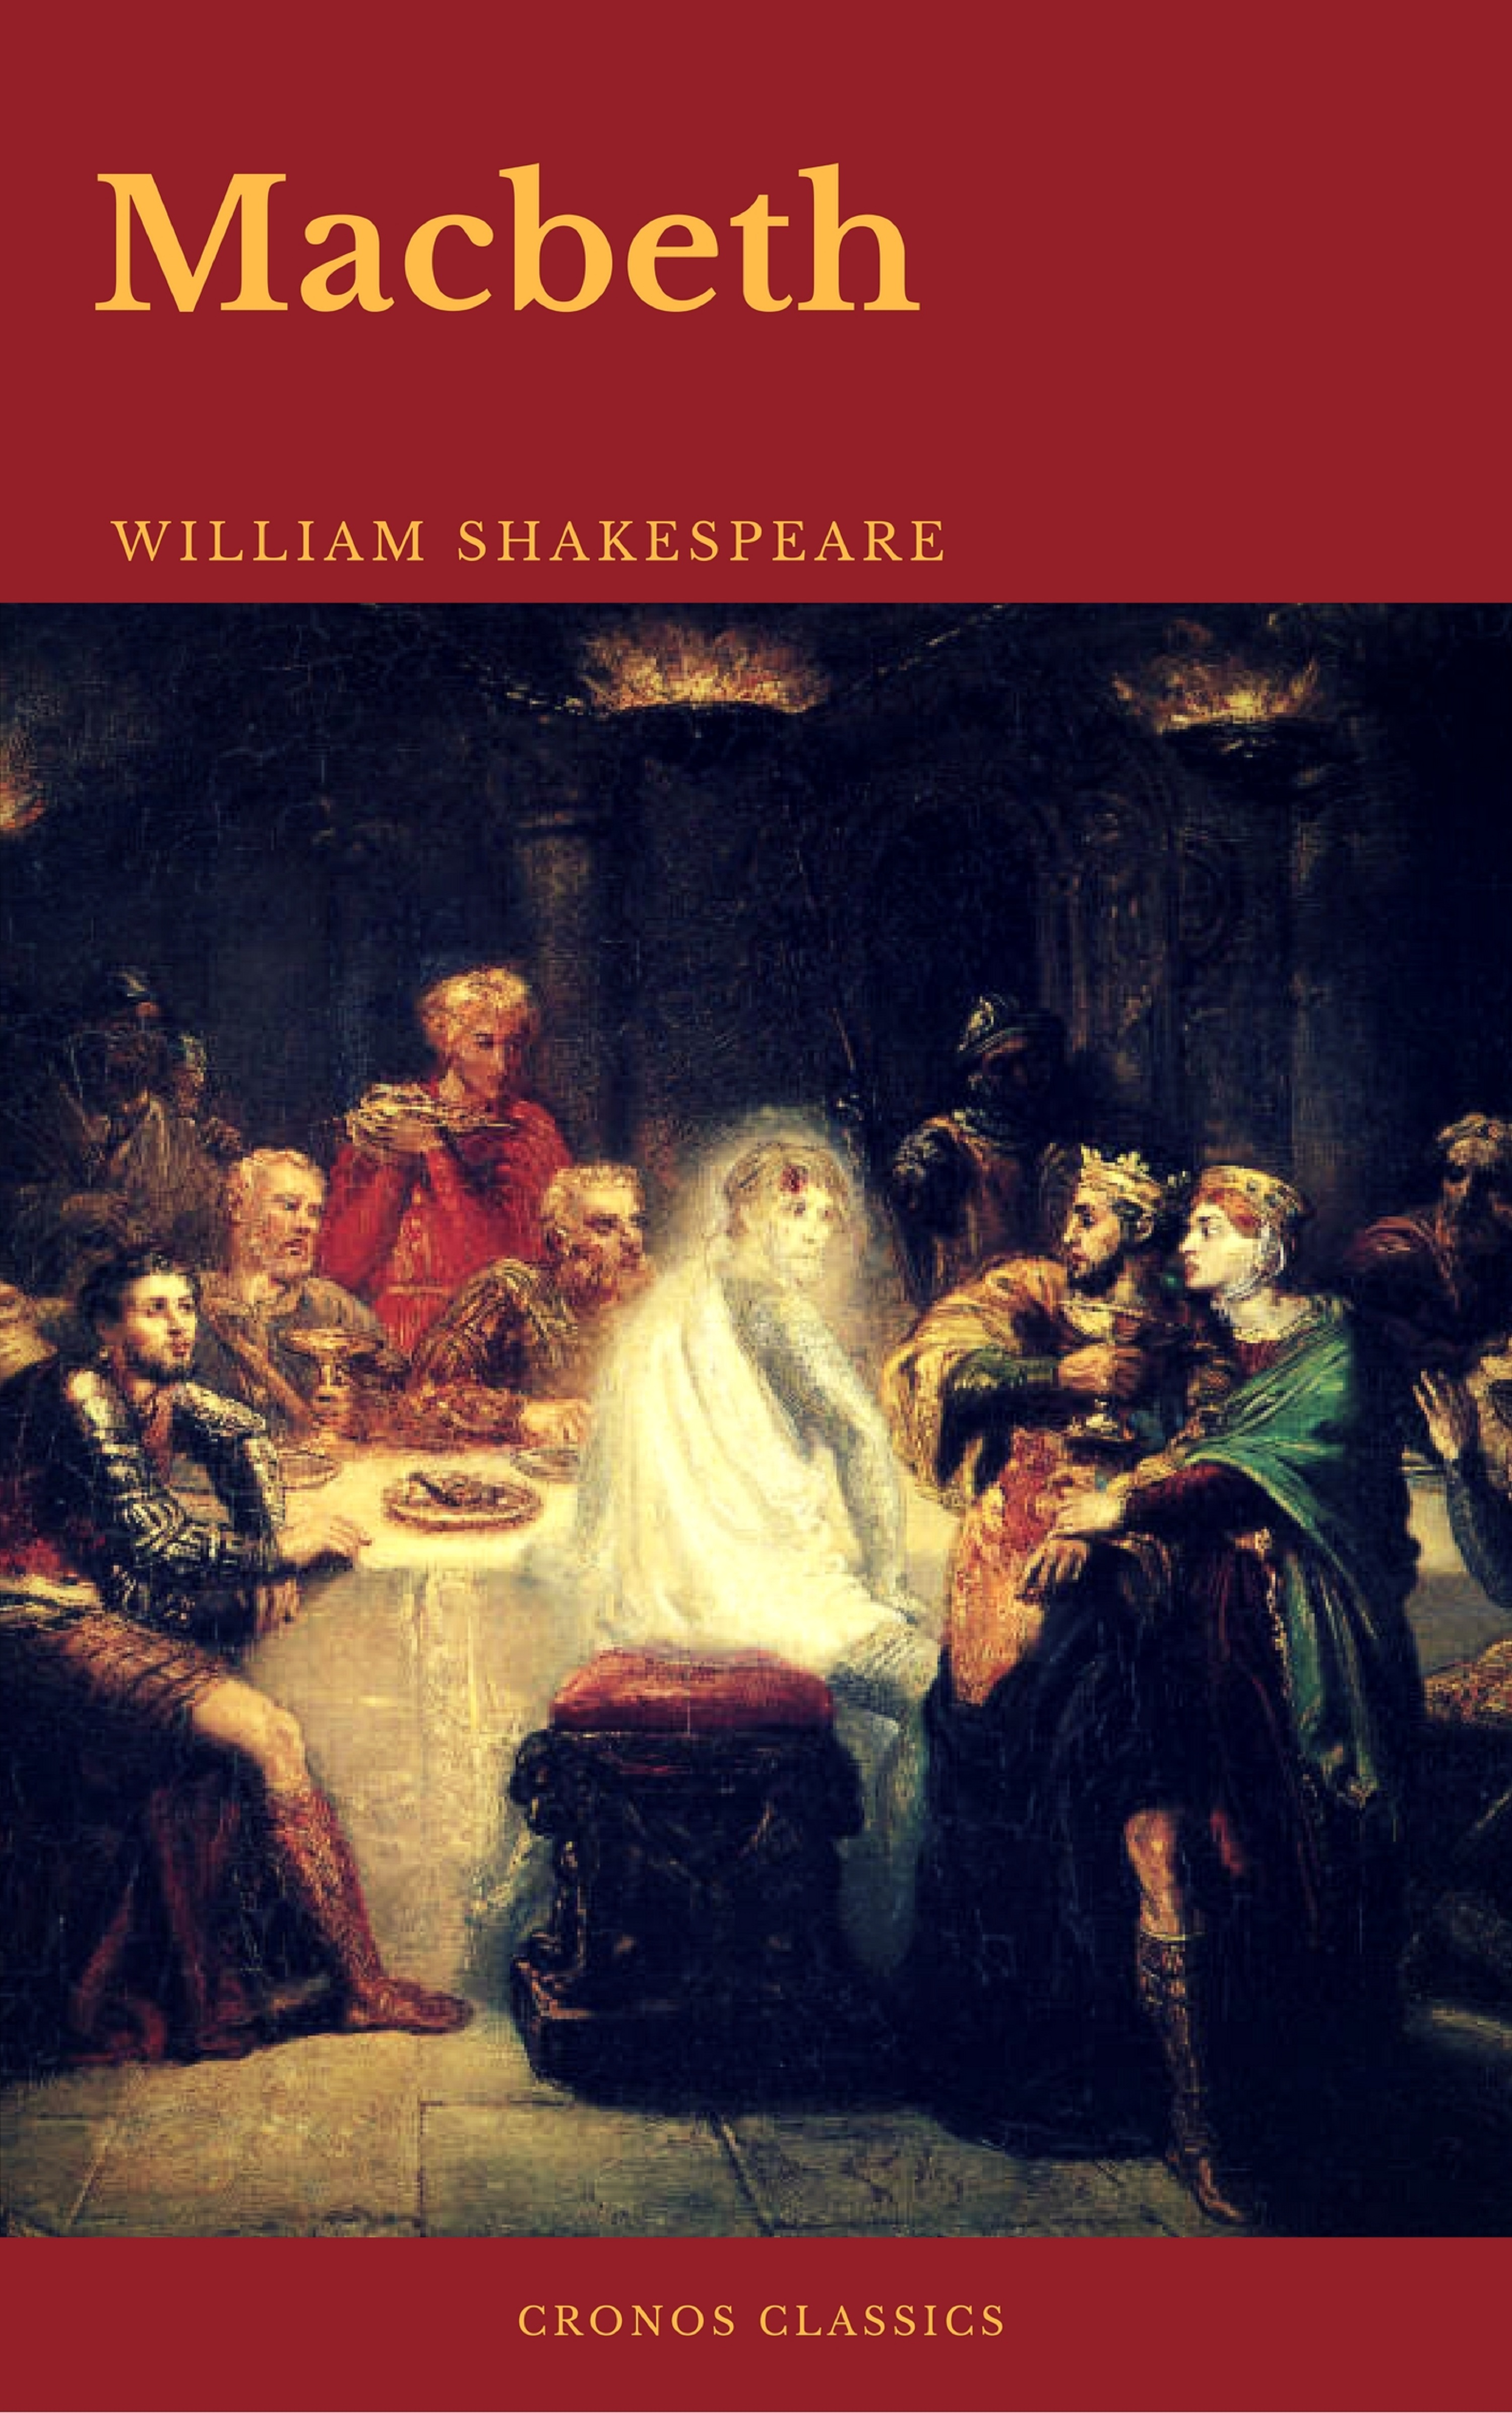 William Shakespeare Macbeth (Cronos Classics) shakespeare william macbeth